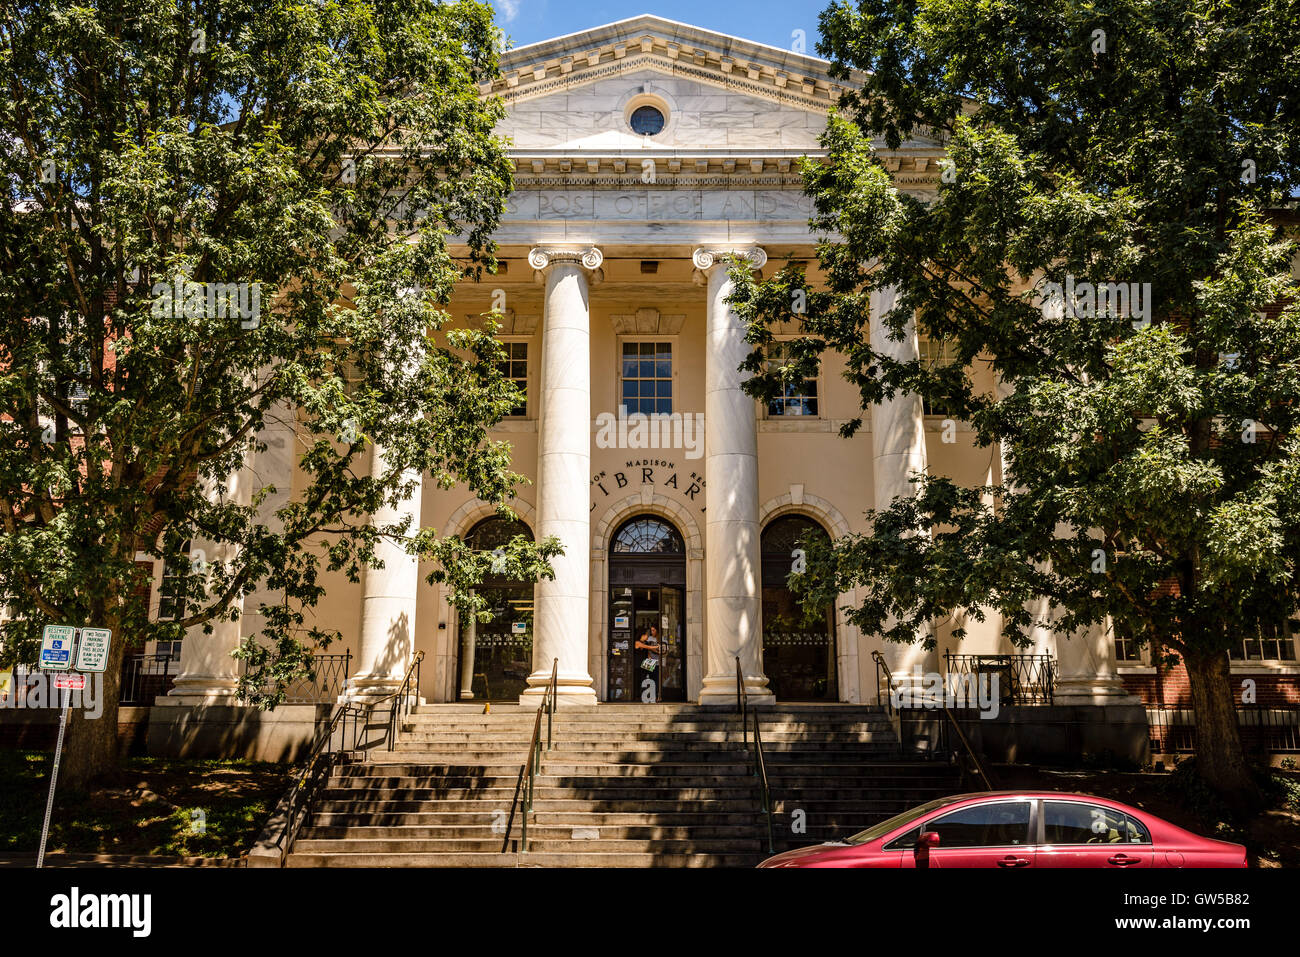 Charlottesville Library Stock Photos & Charlottesville Library Stock ...